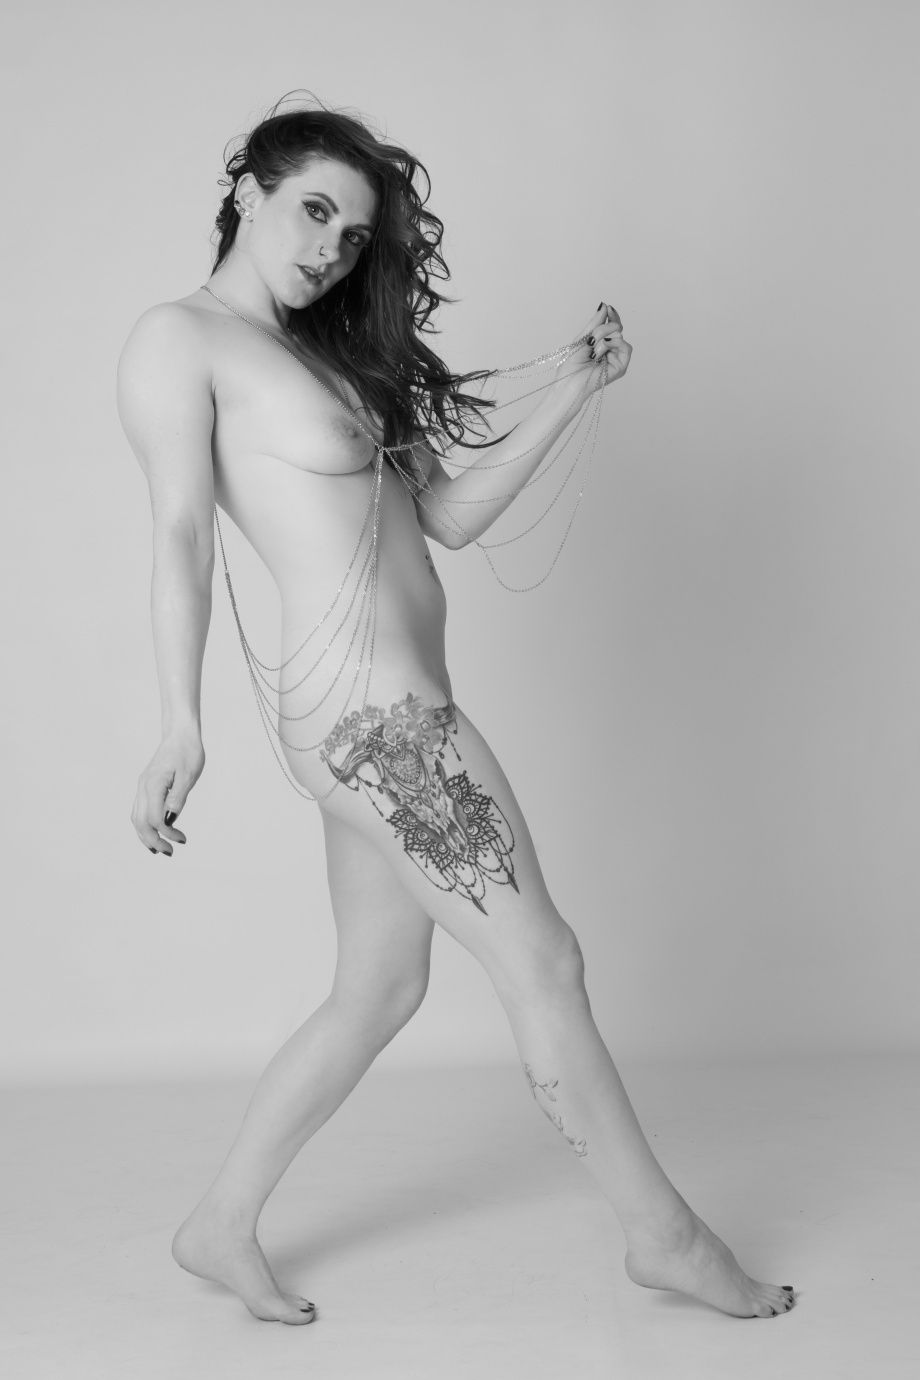 stacey spykes, stacey duggan, pole, dance, pole training, topless, black and white, implied, glamour, studio, nude